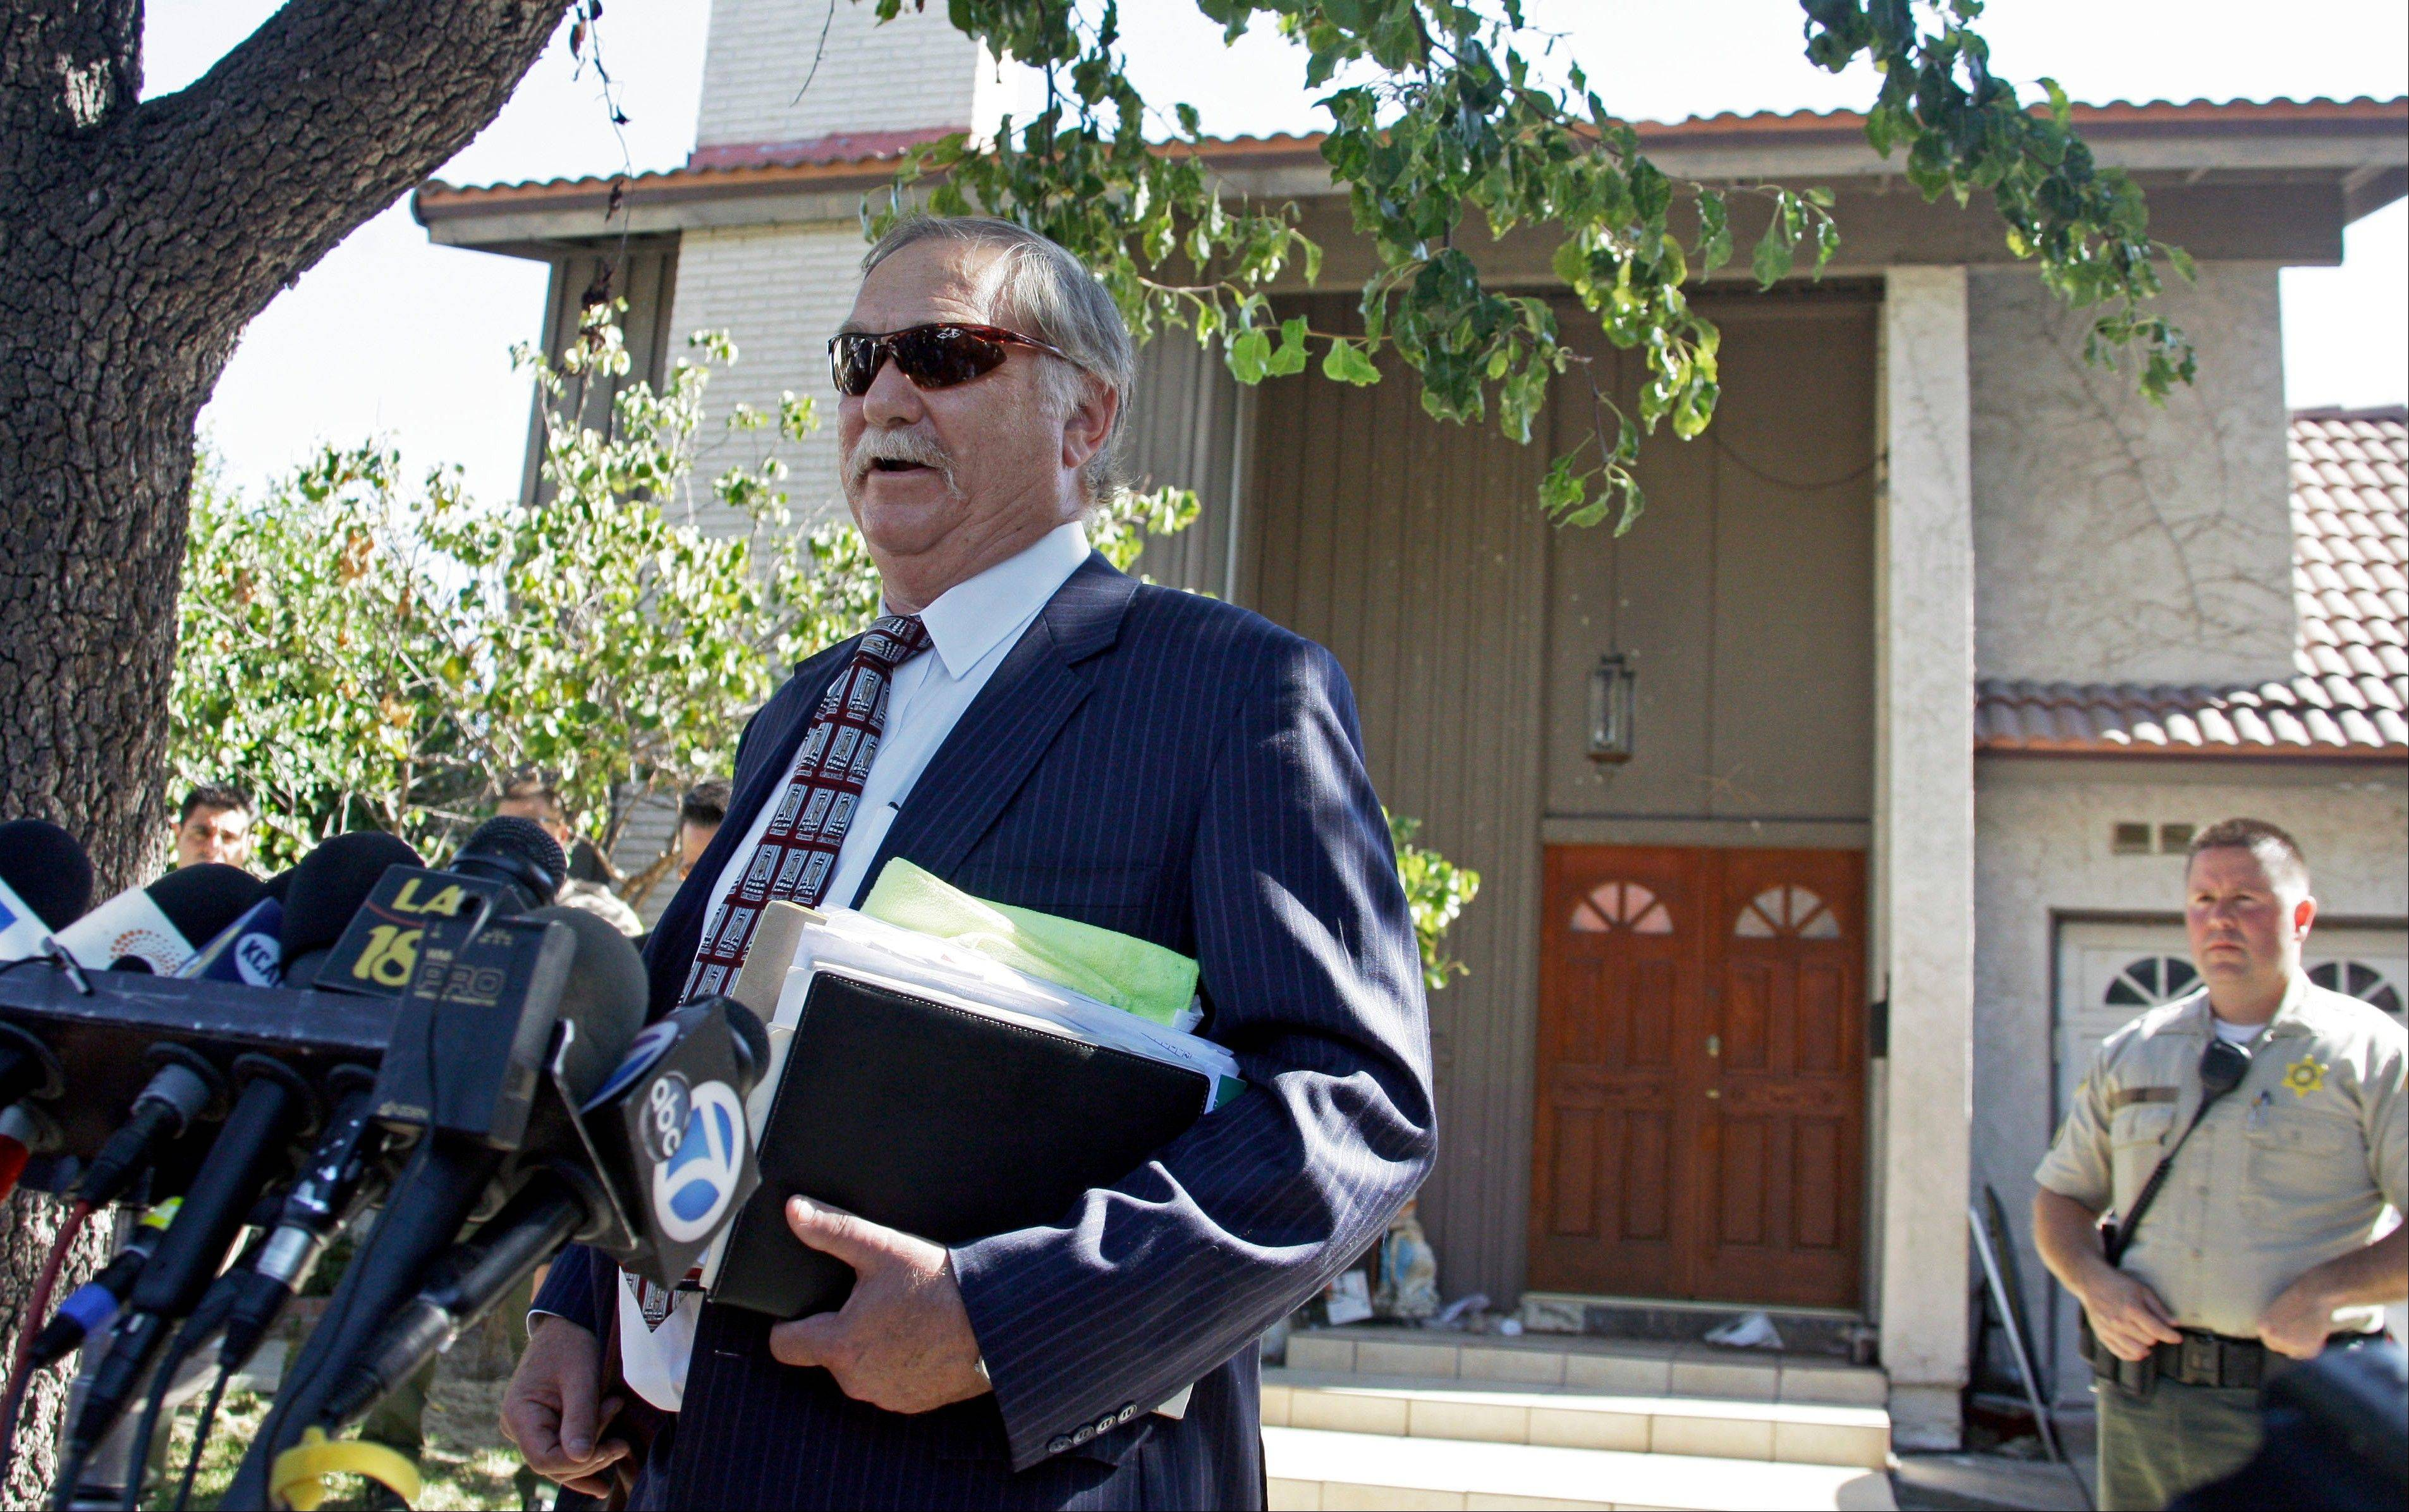 Attorney Steve Seiden speaks to reporters outside at a home believed to belong to the filmmaker associated with an anti-Muslim film, that has caused controversy and violence throughout the Middle East and elsewhere.